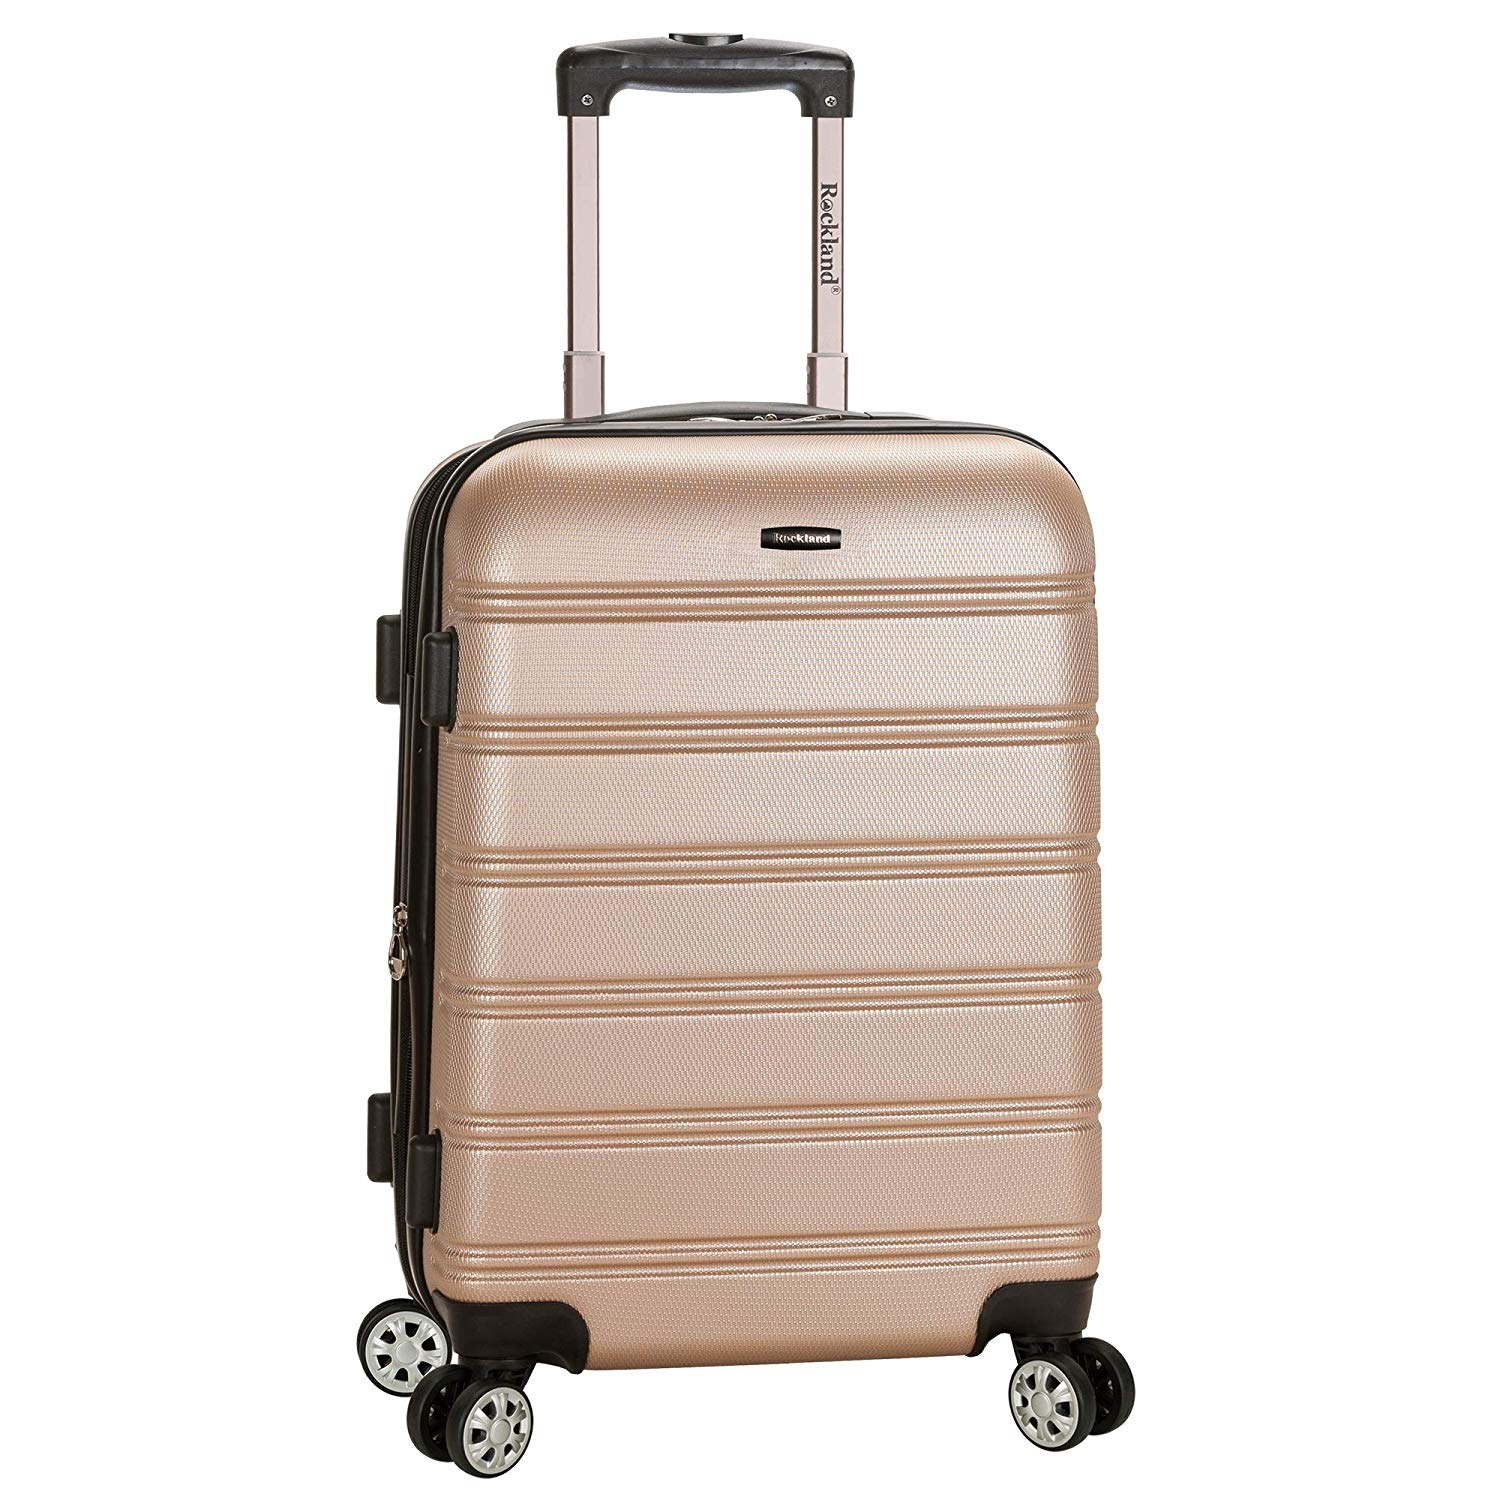 Rockland Expandable Luggage, 20-Inch